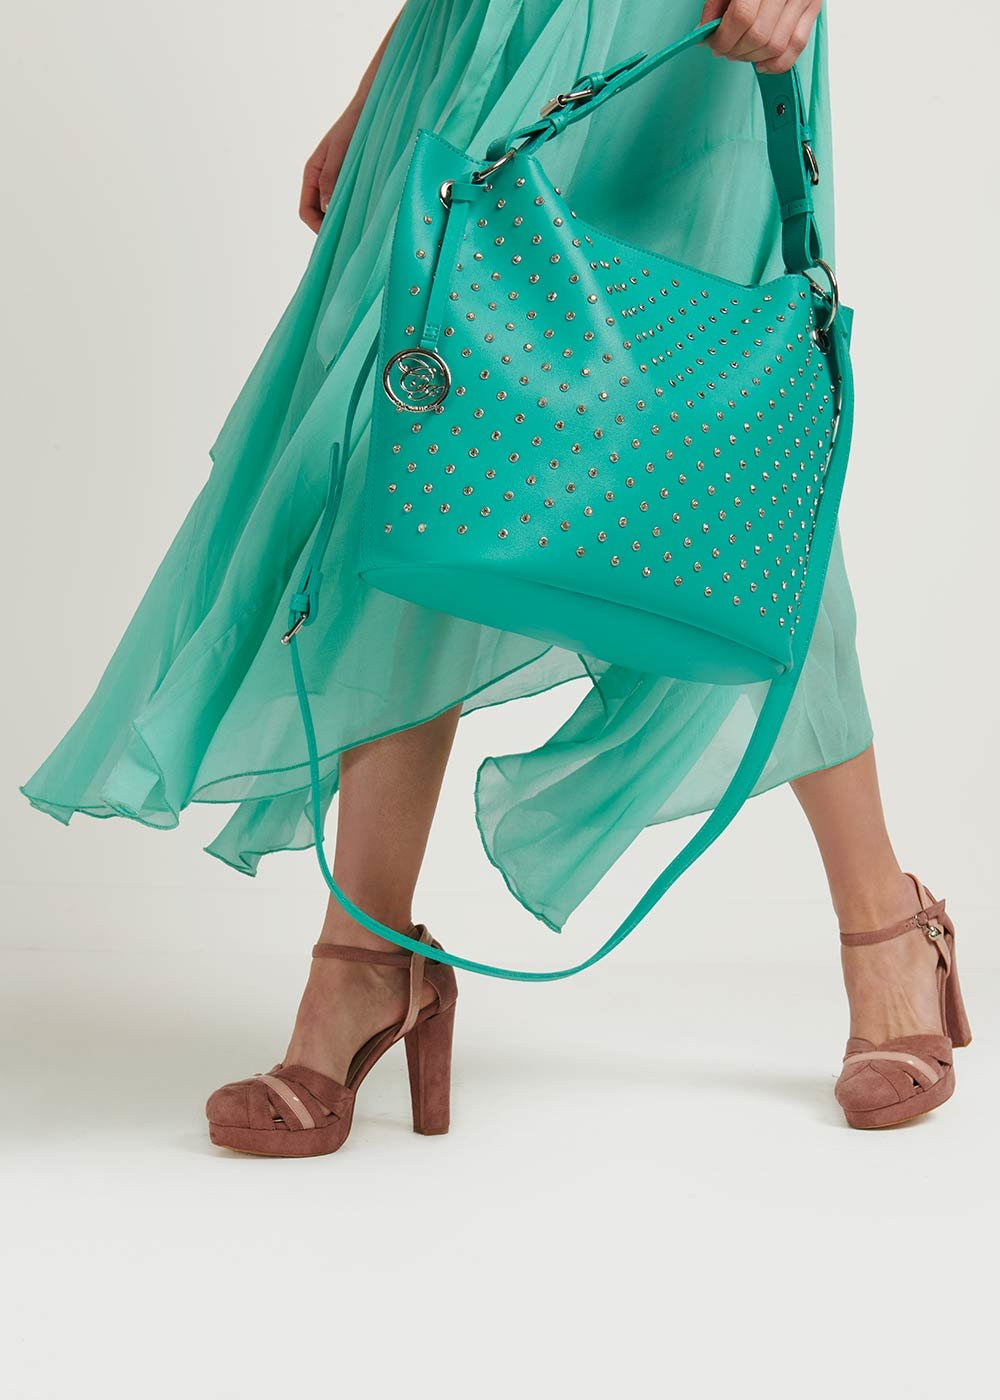 Badly bag with rhinestones - Emerald - Woman